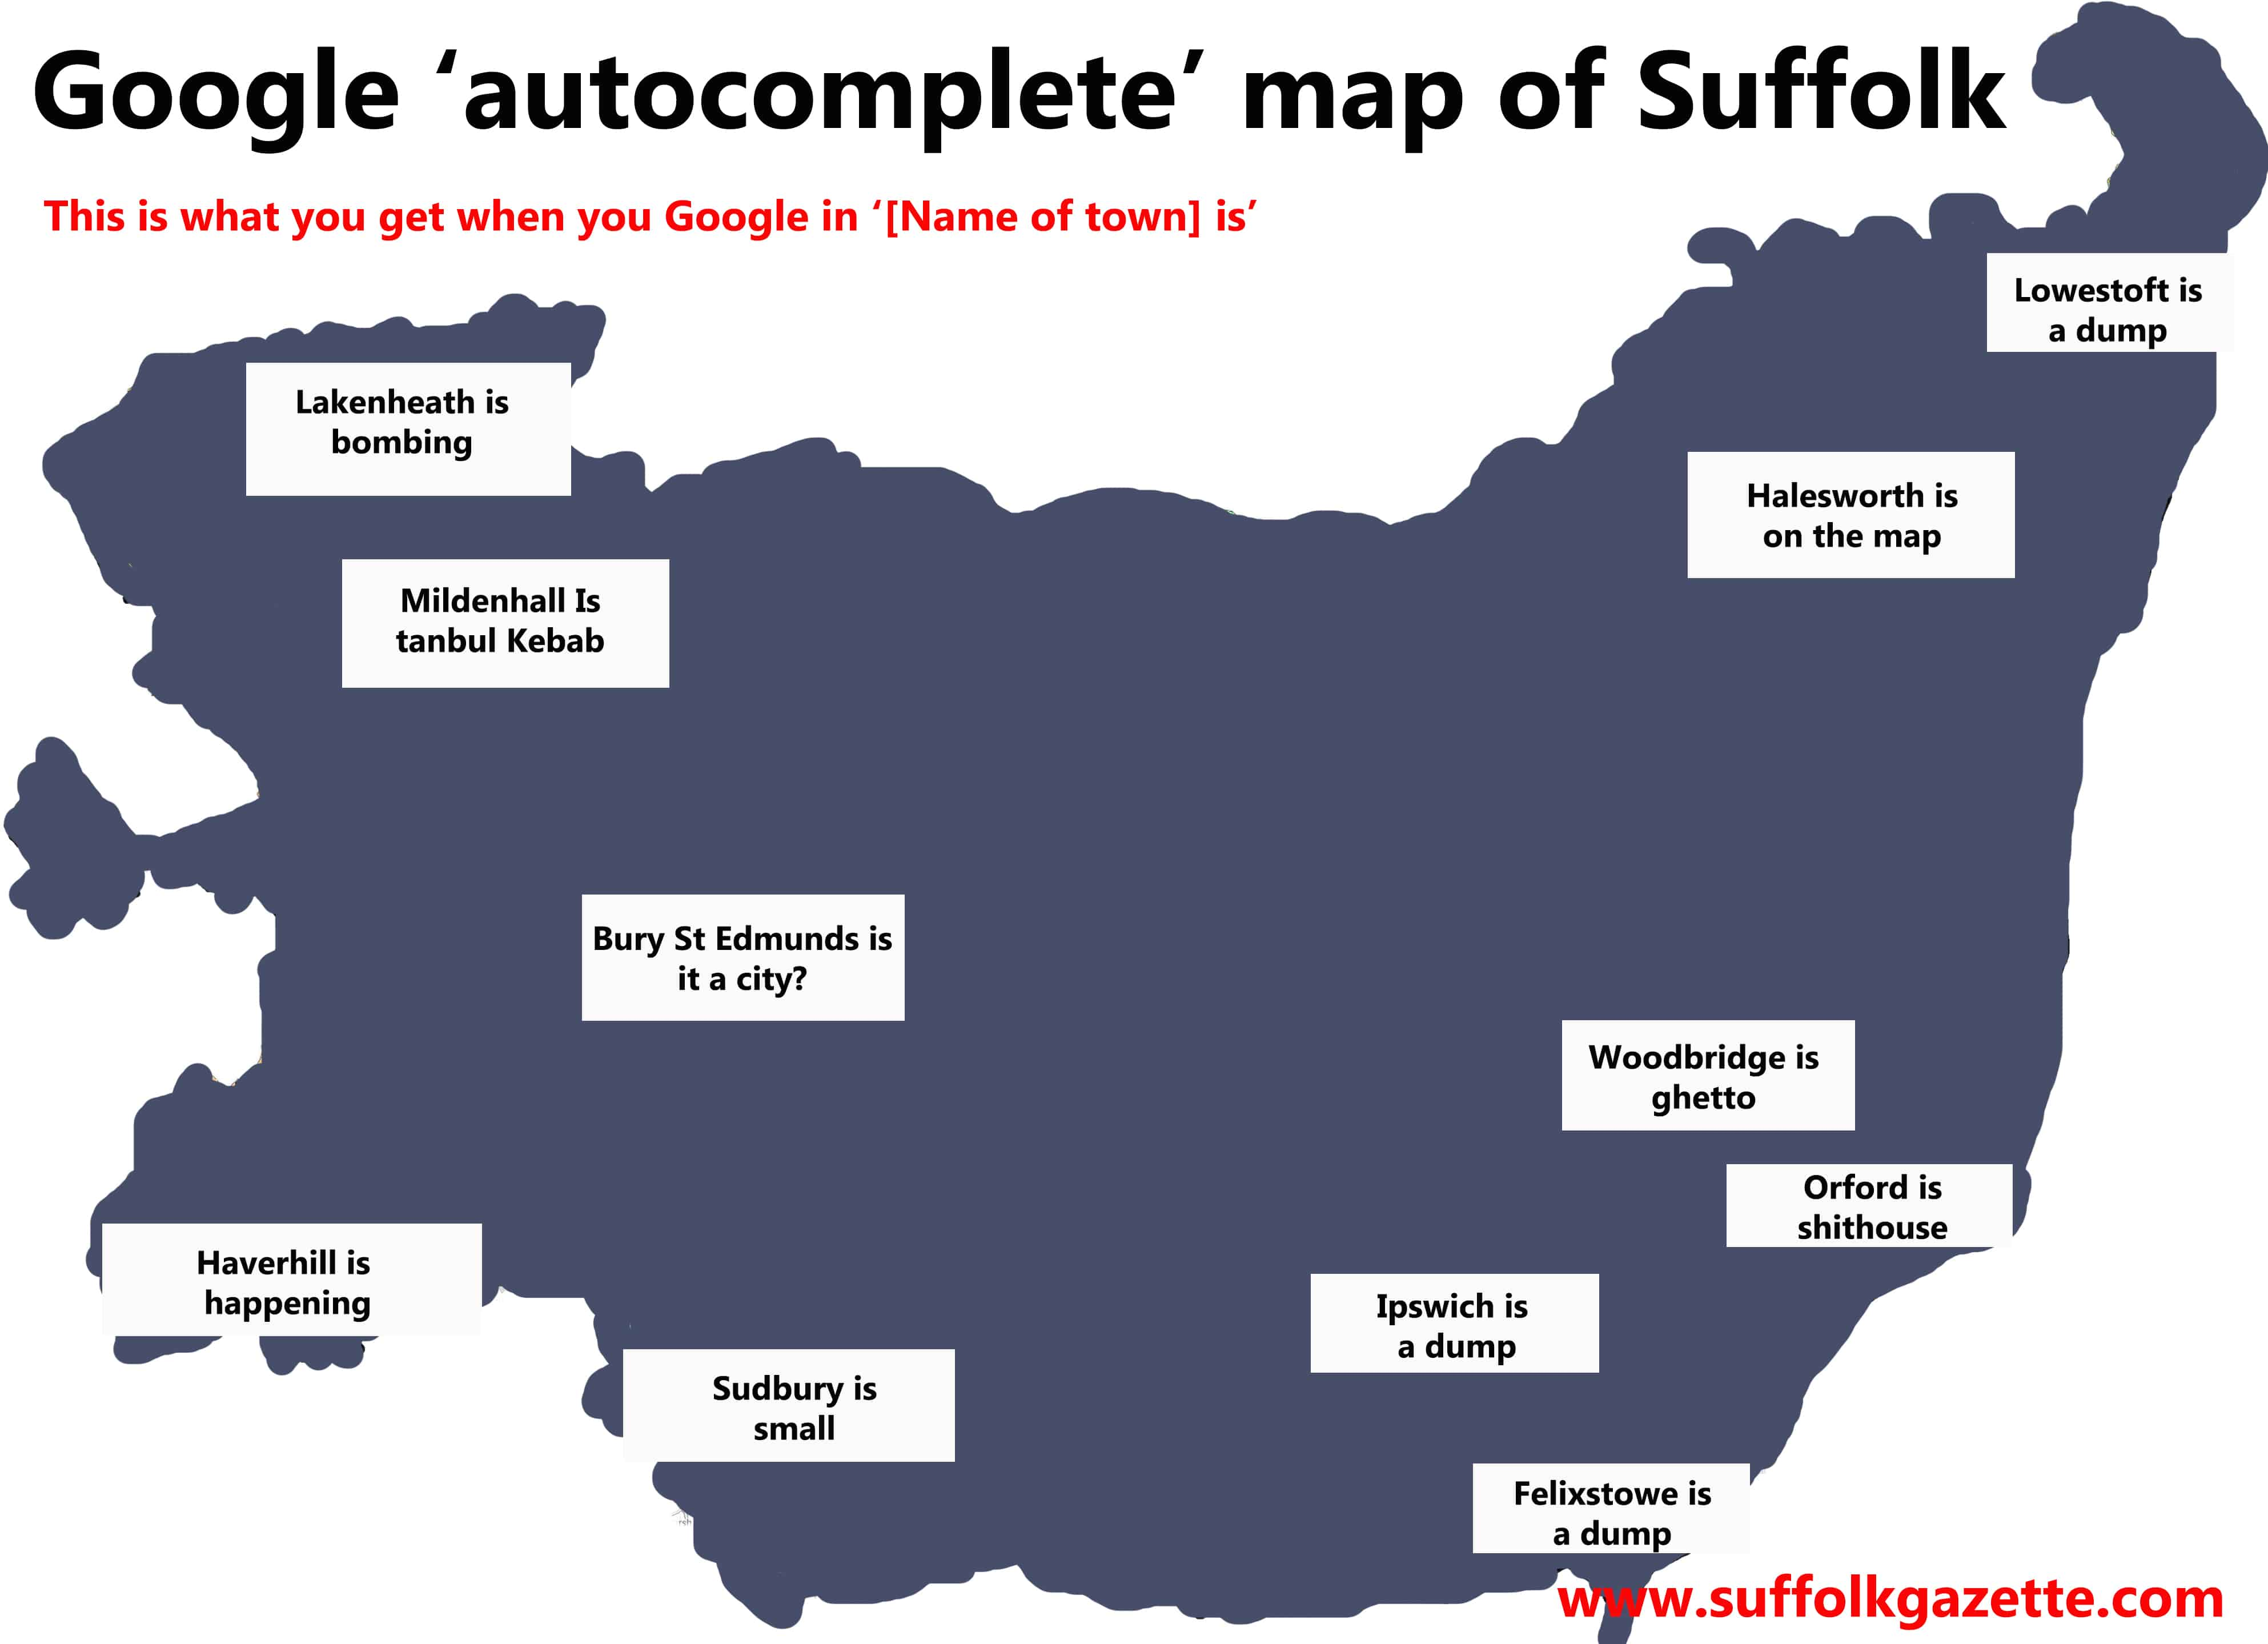 Google map of Suffolk